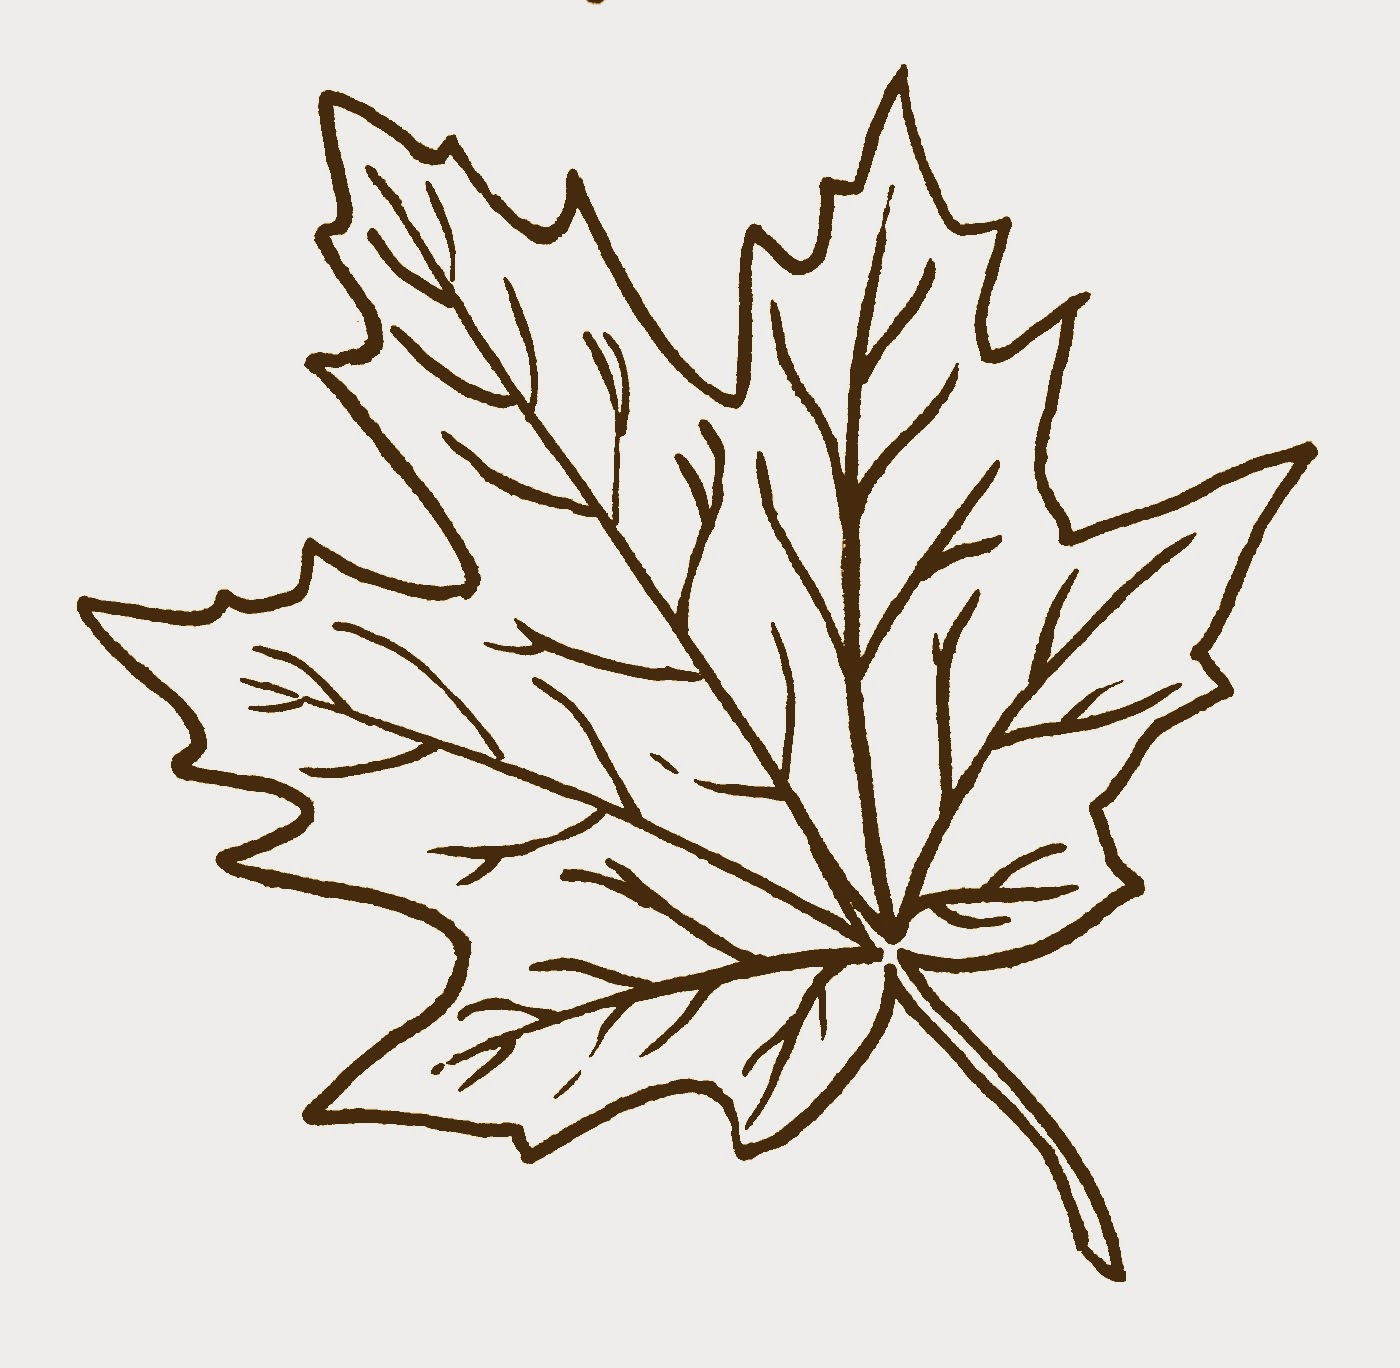 hight resolution of fall leaves clip art black and white